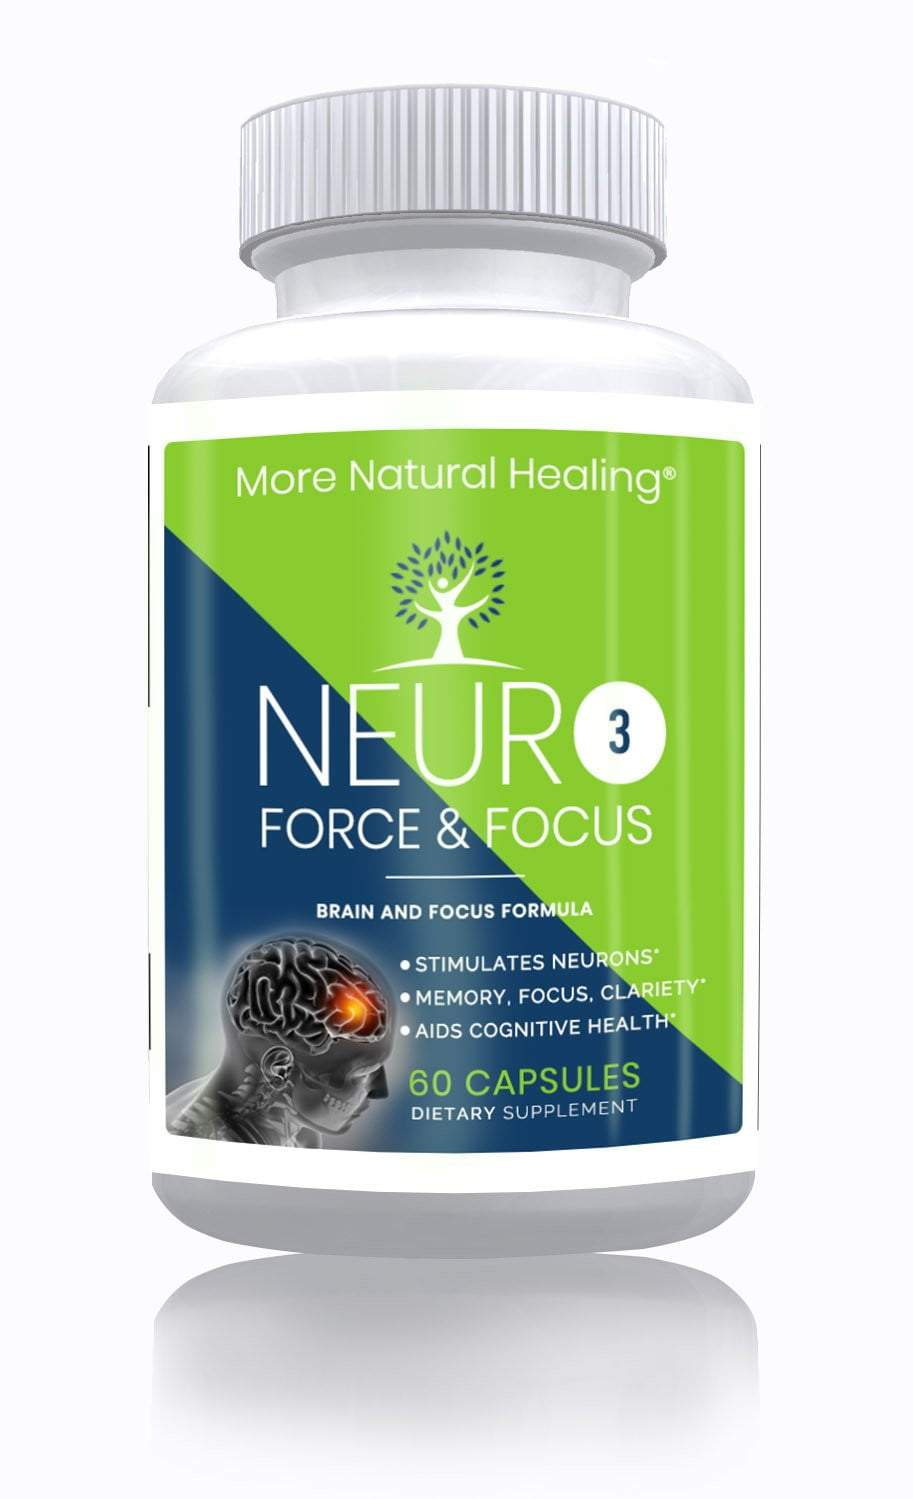 NeuroForce & Focus Cognitive Health, Memory, Clarity and Brain Focus Supplement - More Natural Healing